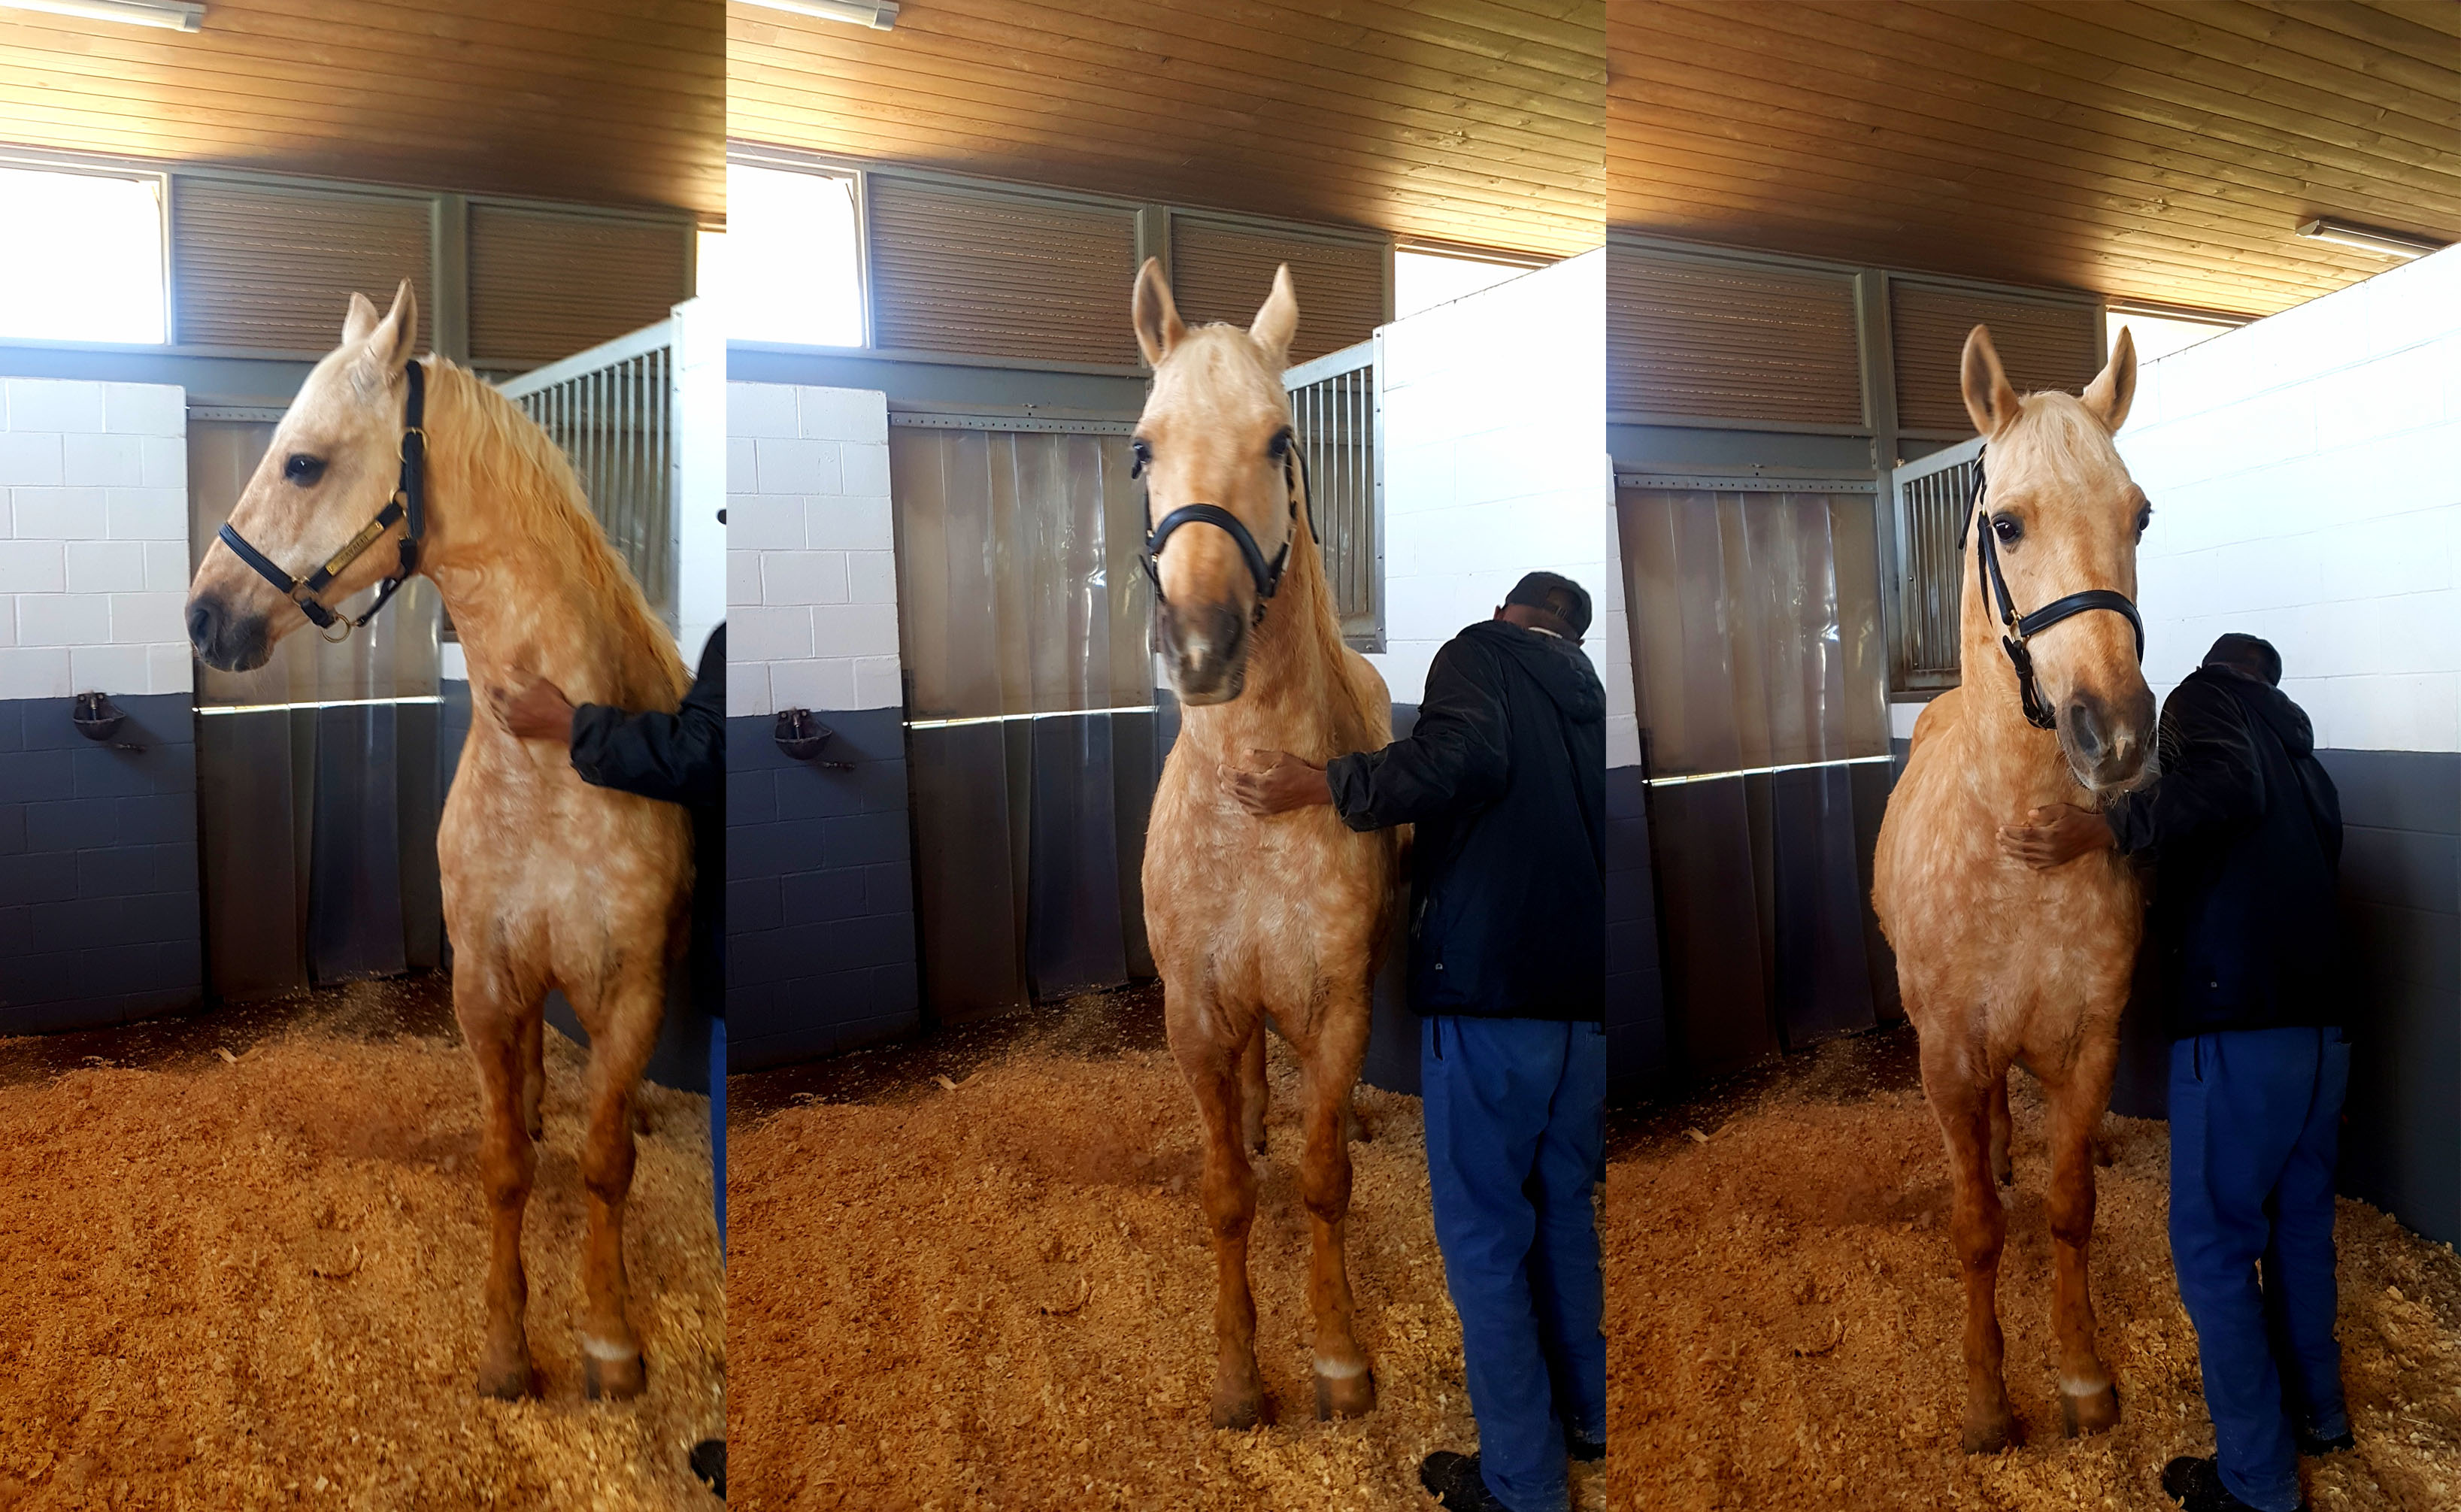 This is a cremello (blonde) horse. Fancy Boy lives in the stables at Cavalli and celebrated his 13th birthday on the day of our visit!